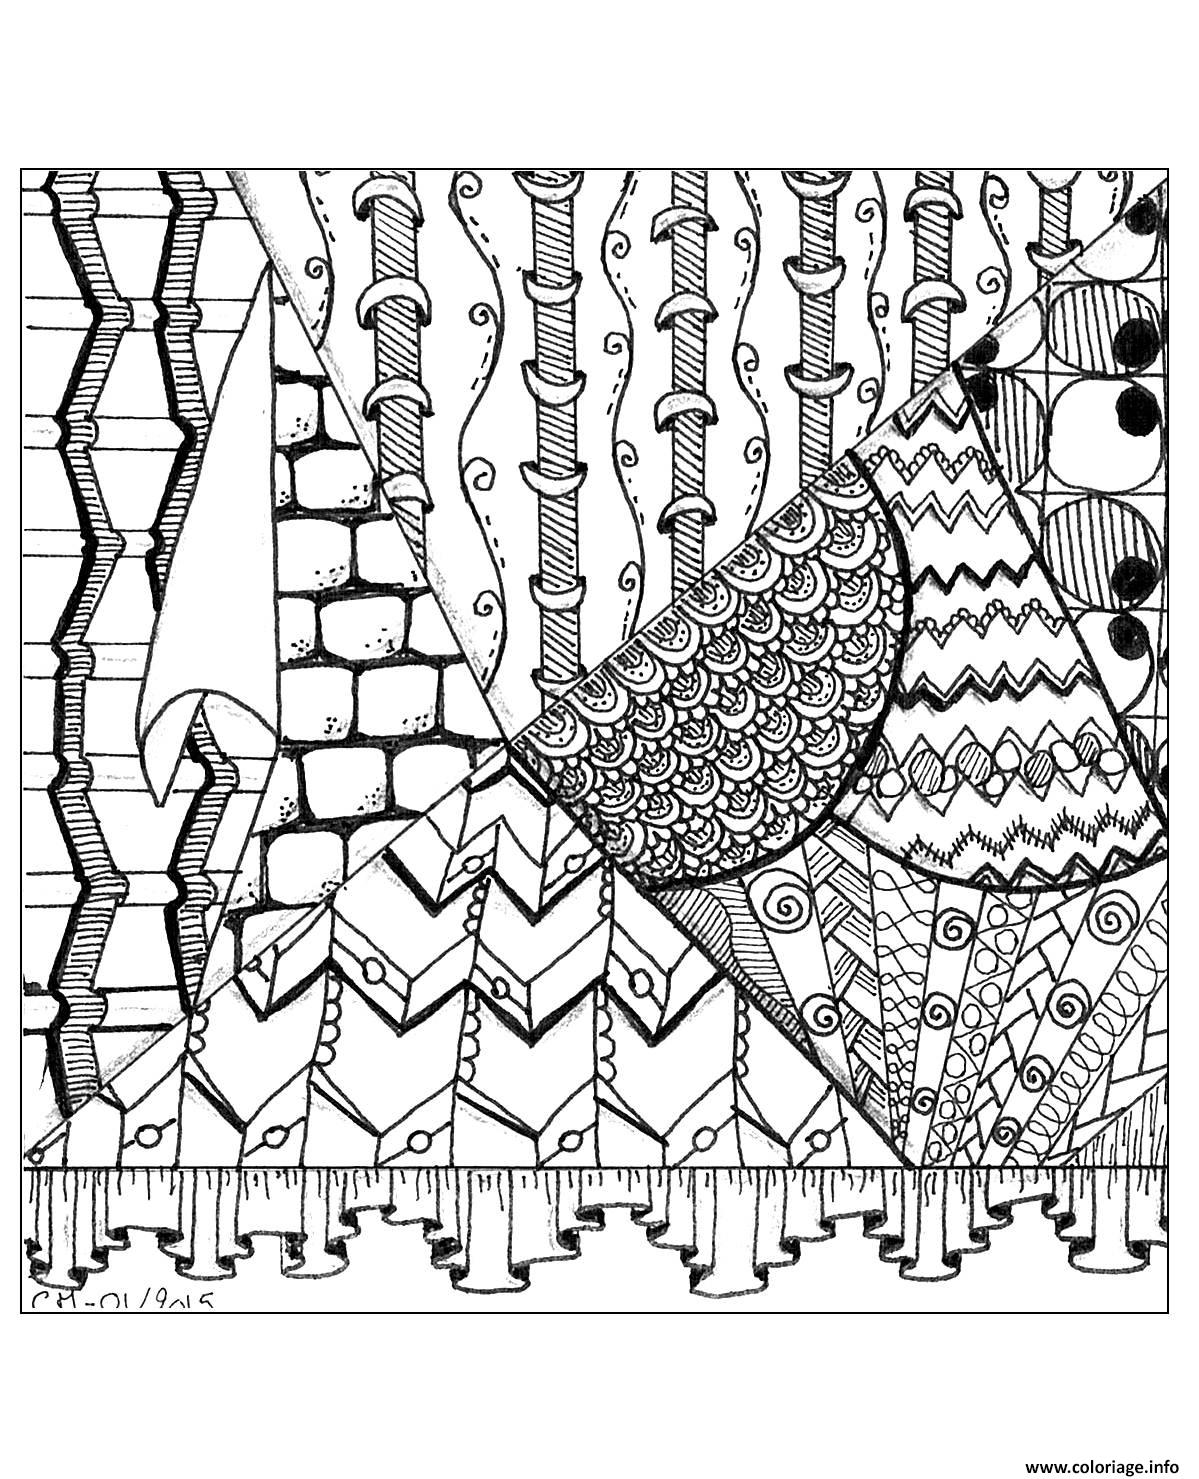 Dessin adulte zentangle by cathym 24 Coloriage Gratuit à Imprimer